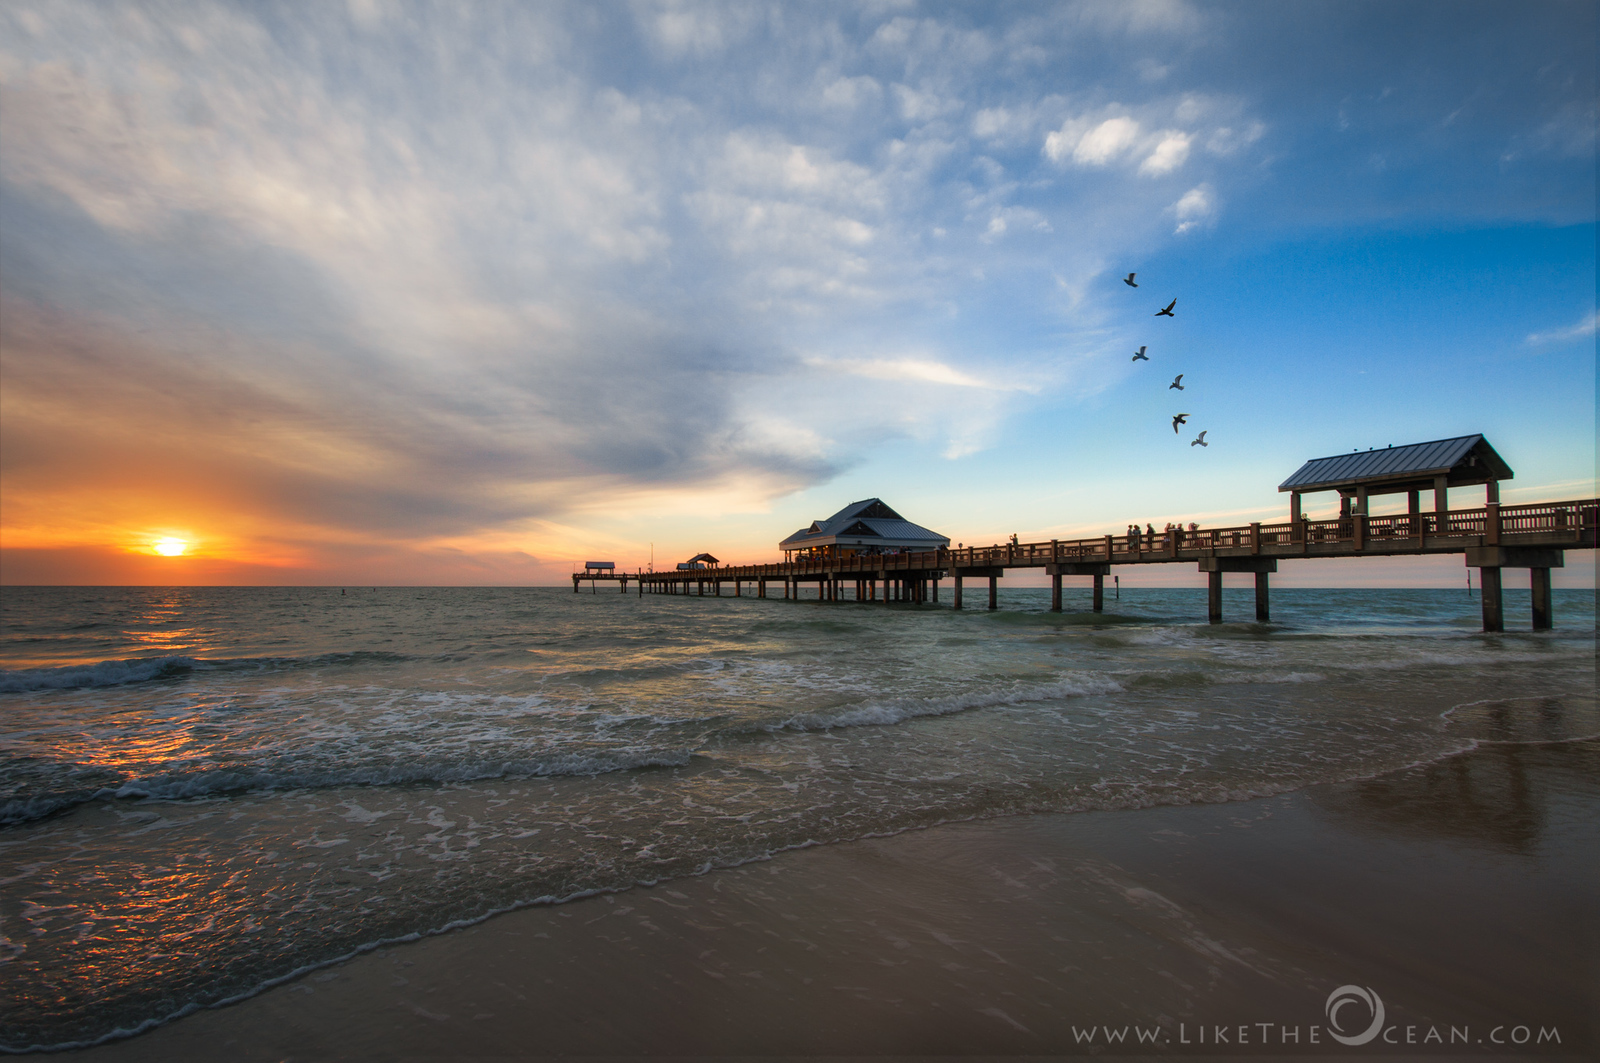 The Pier of Clearwater